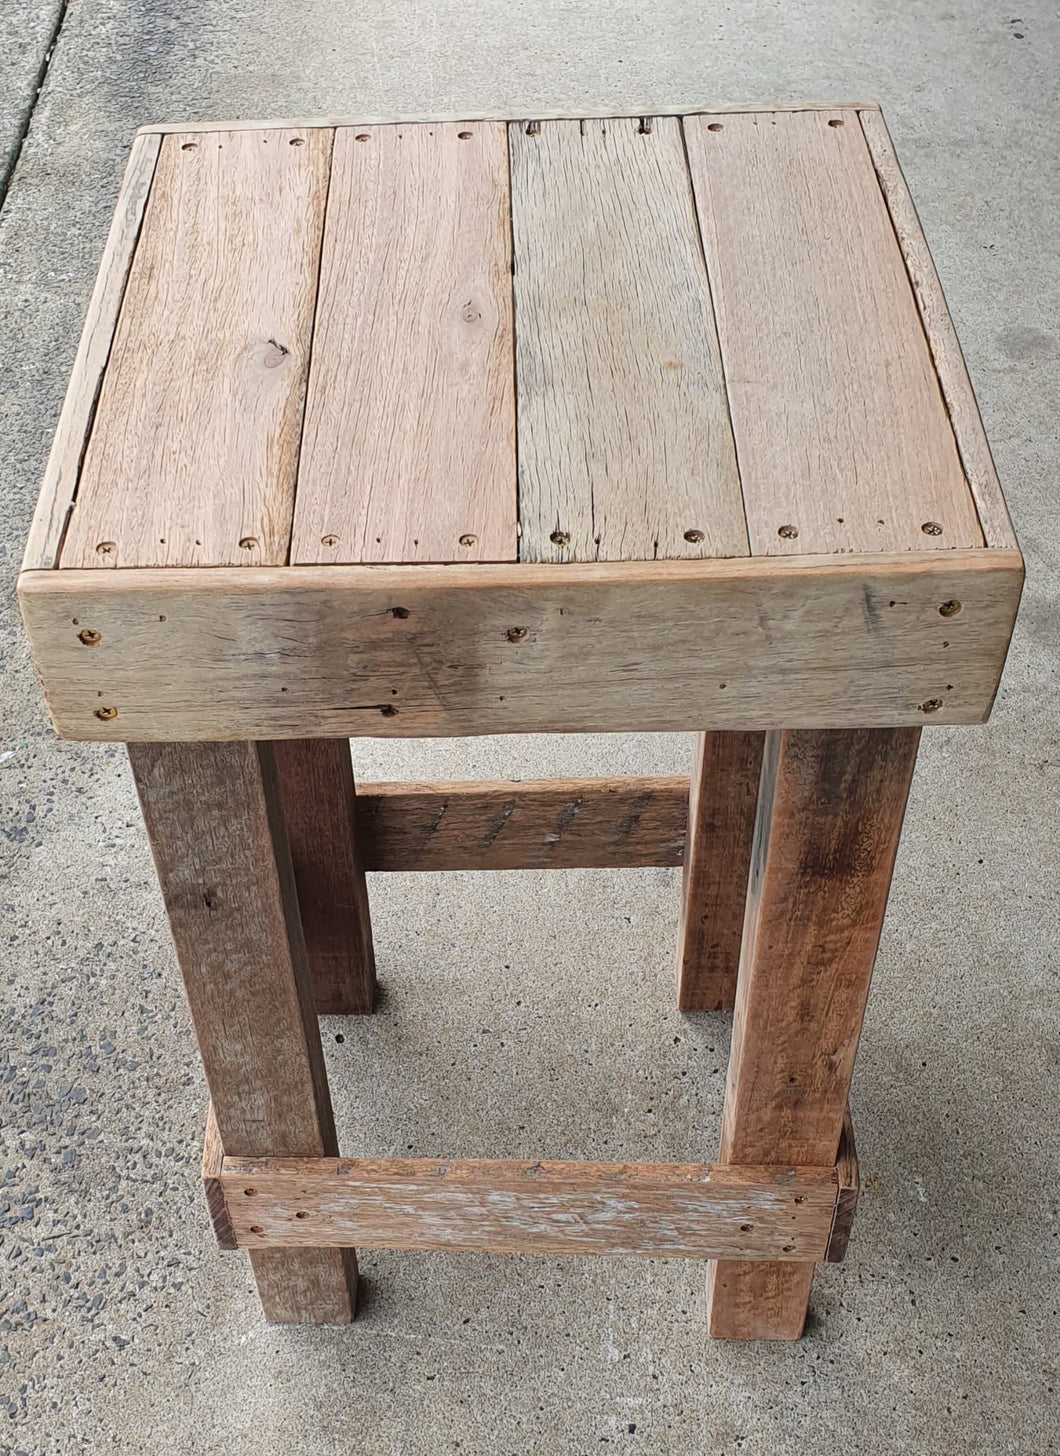 440mm bar stool standard wooden recycled